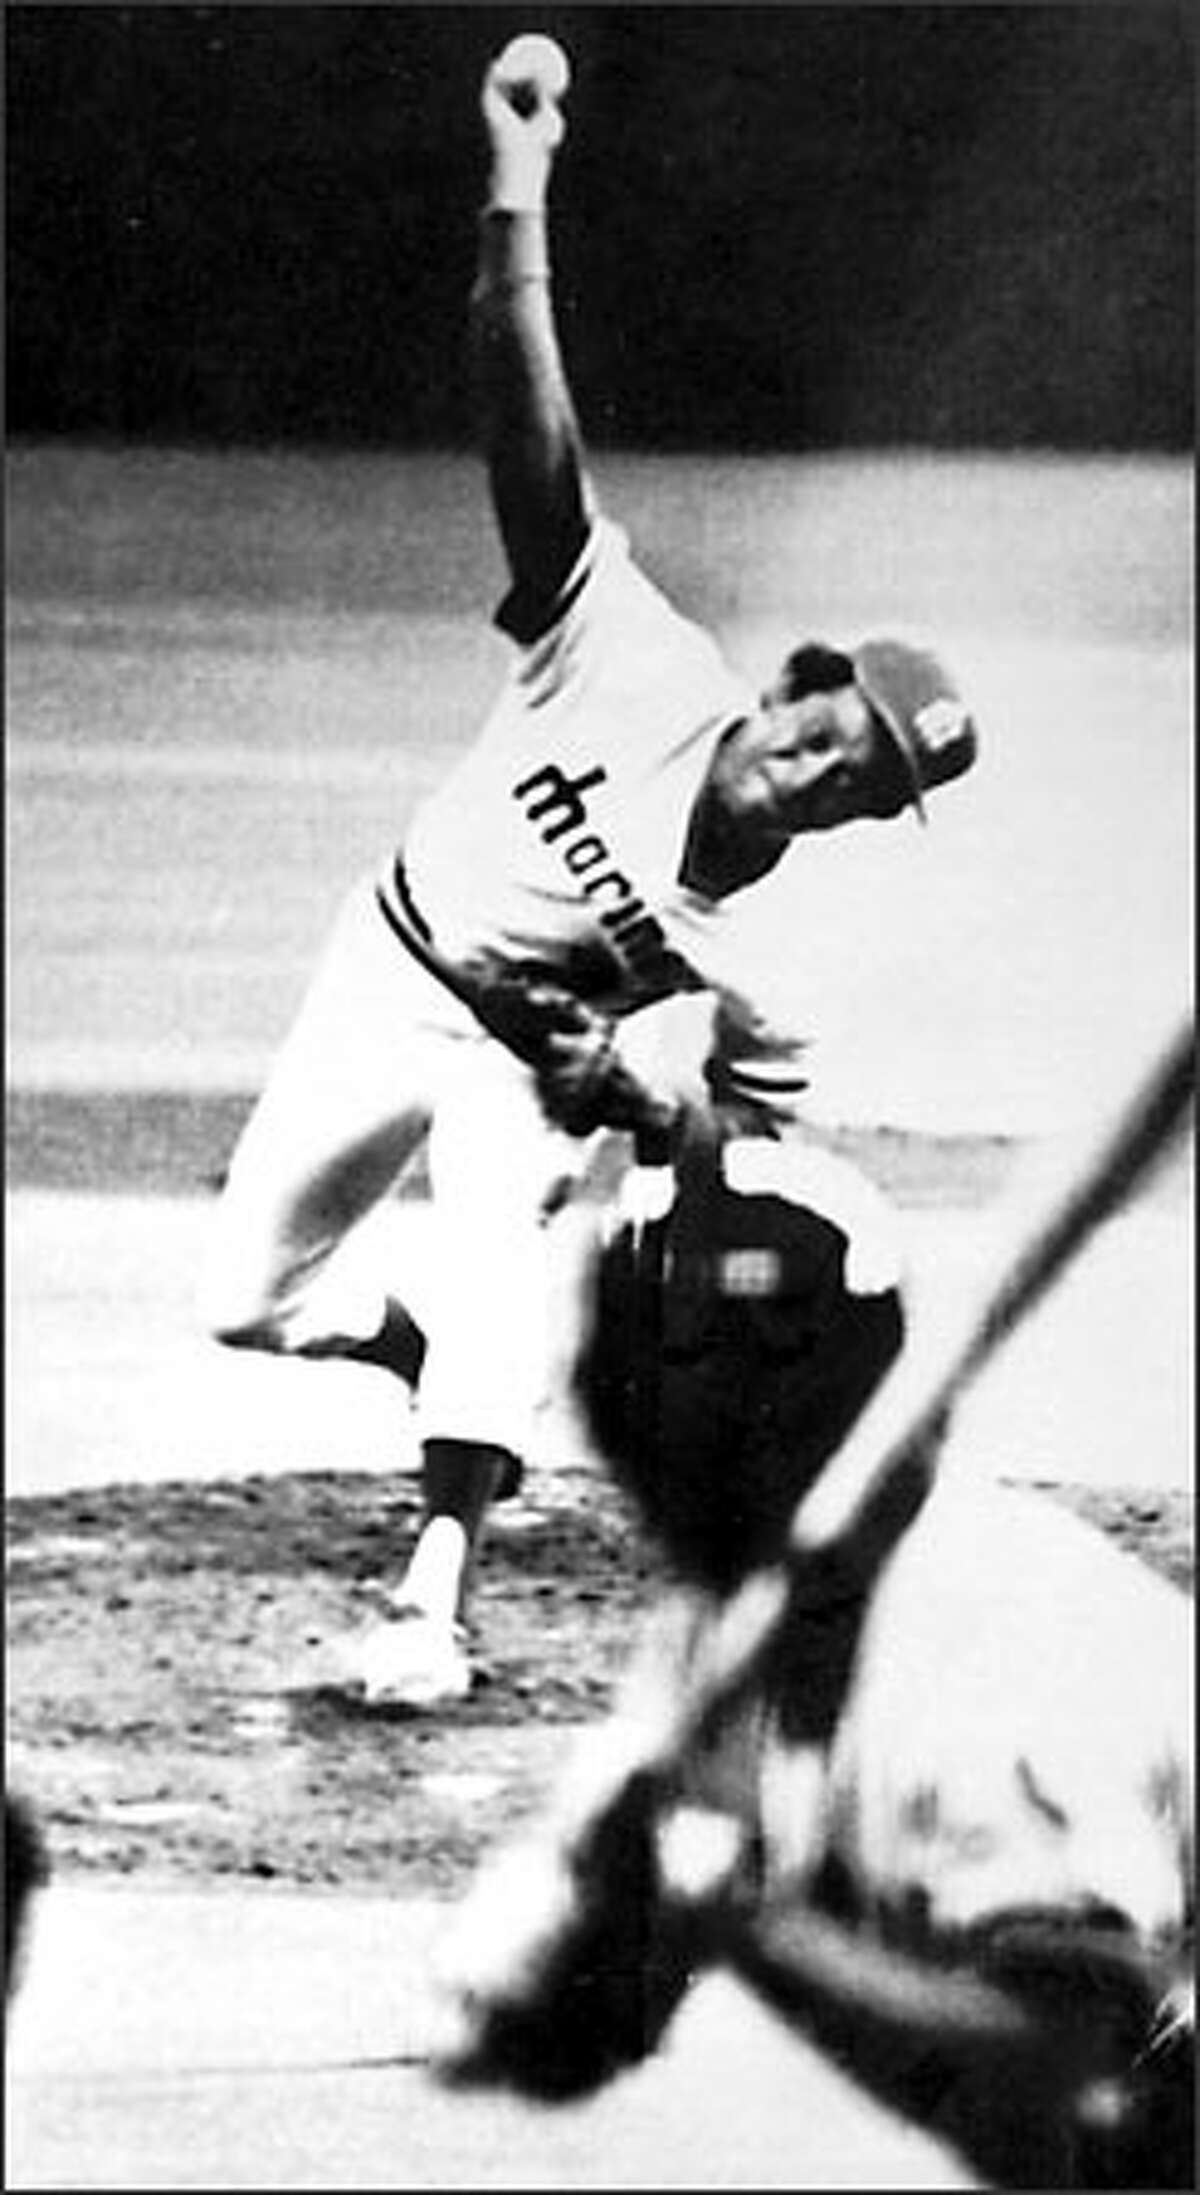 Diego Segui throws the Mariners' first-ever pitch, a called strike against Jerry Remy of the California Angels on April 6, 1977 at the Kingdome. The Mariners lost the contest 7-0.